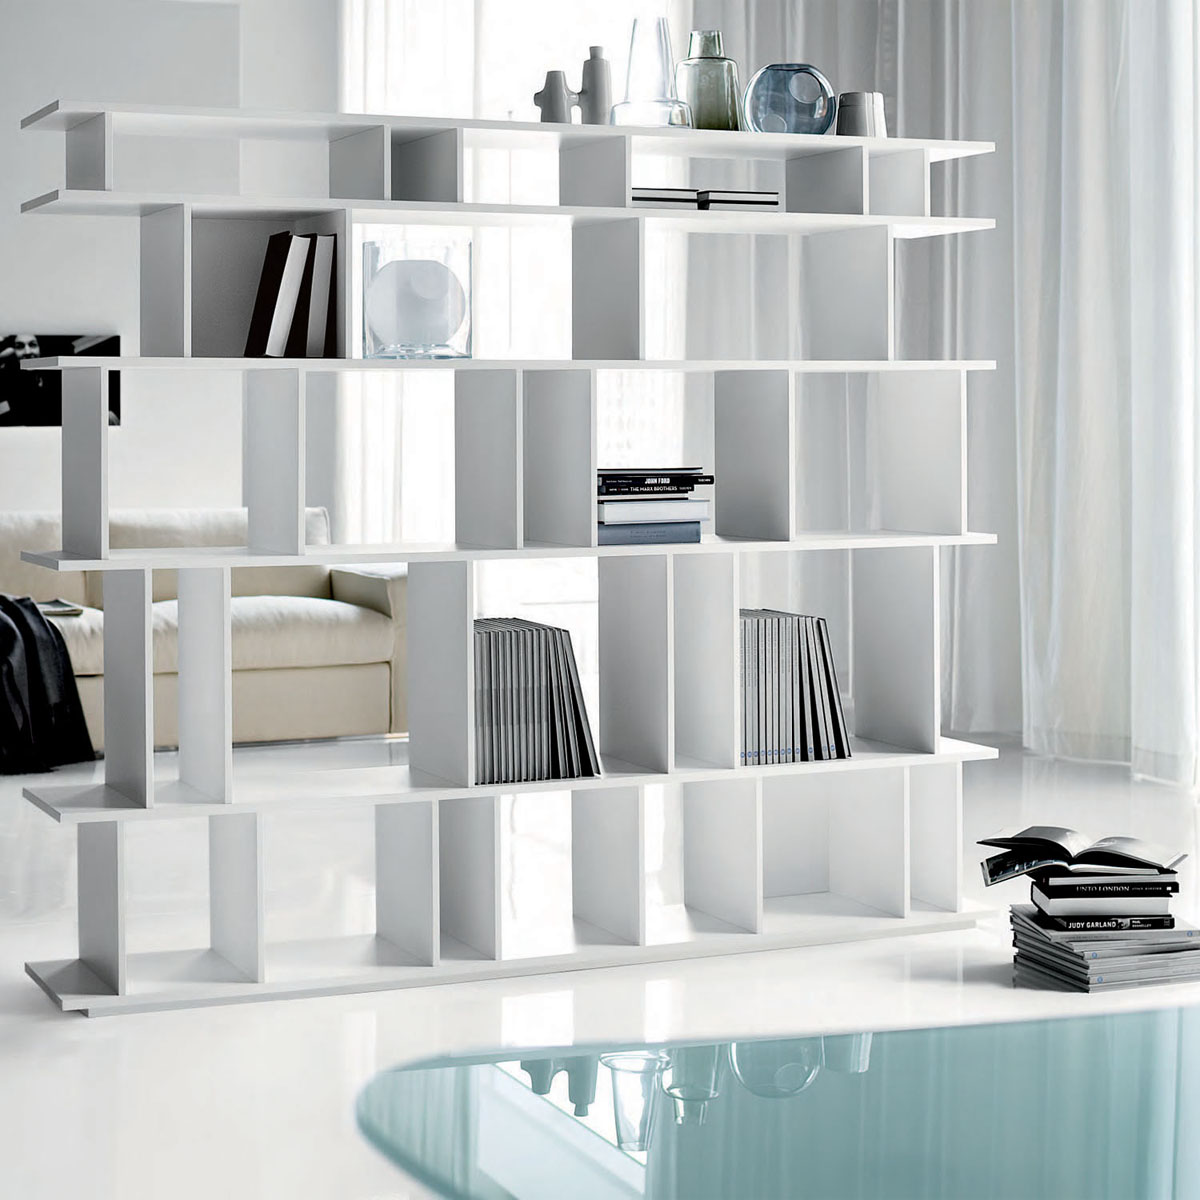 Muebles de dise o sovet cattelan italia y bonaldo for Muebles sanchez catalogo